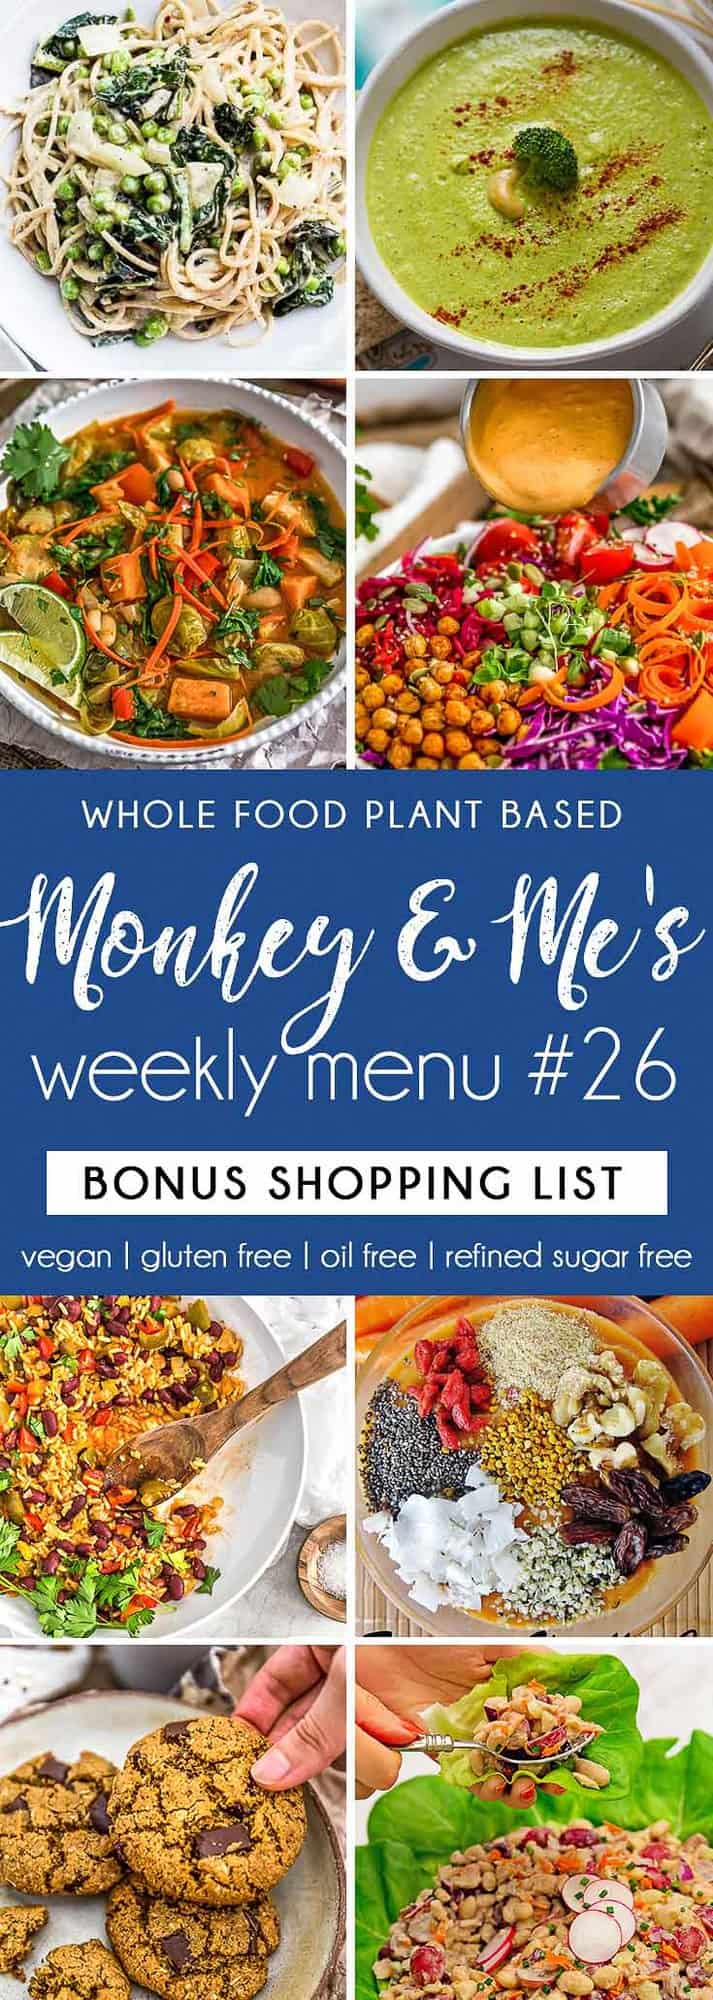 Monkey and Me's Menu 26 featuring 8 recipes